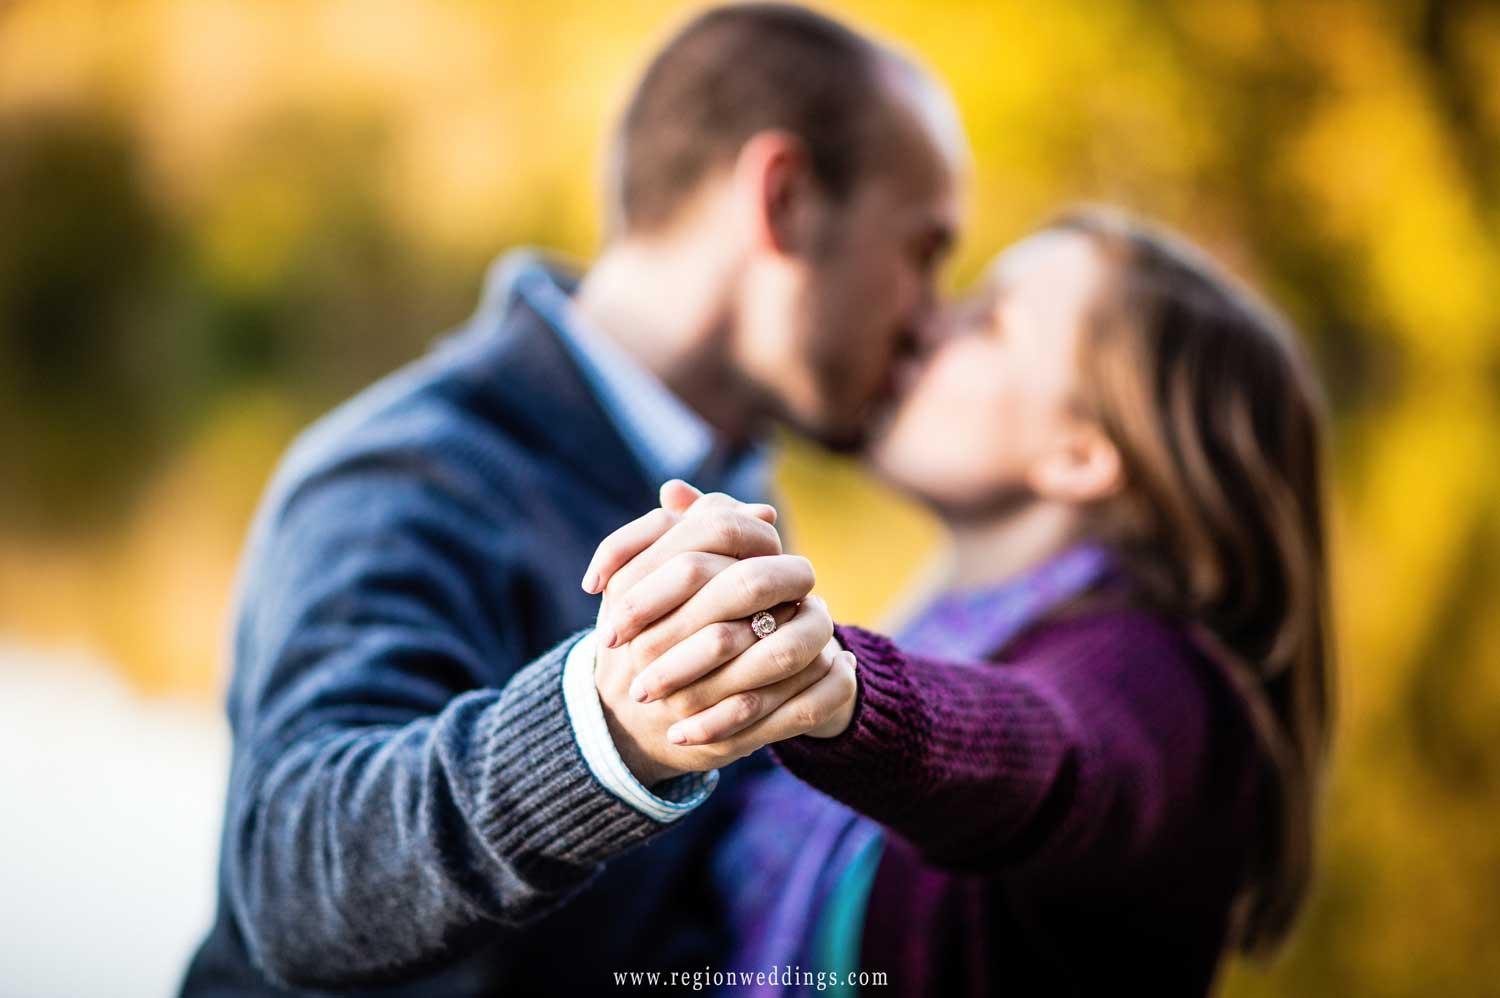 An engaged couple shows off her ring as they kiss in the background.